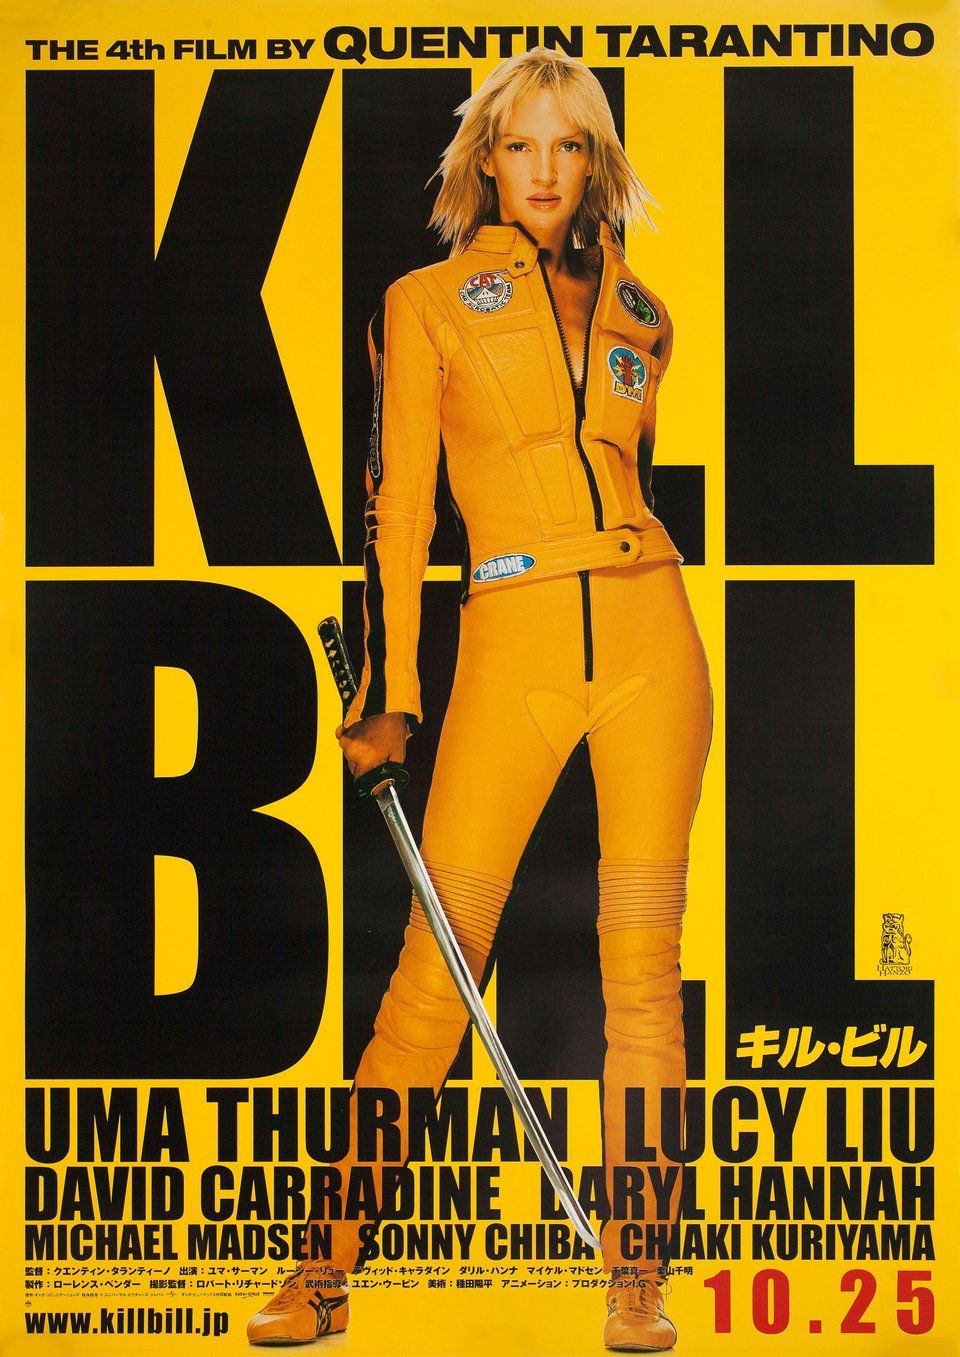 LUCY LIU Hollywood Celebrity Poster TV Movie Poster 24 in by 36 in 4